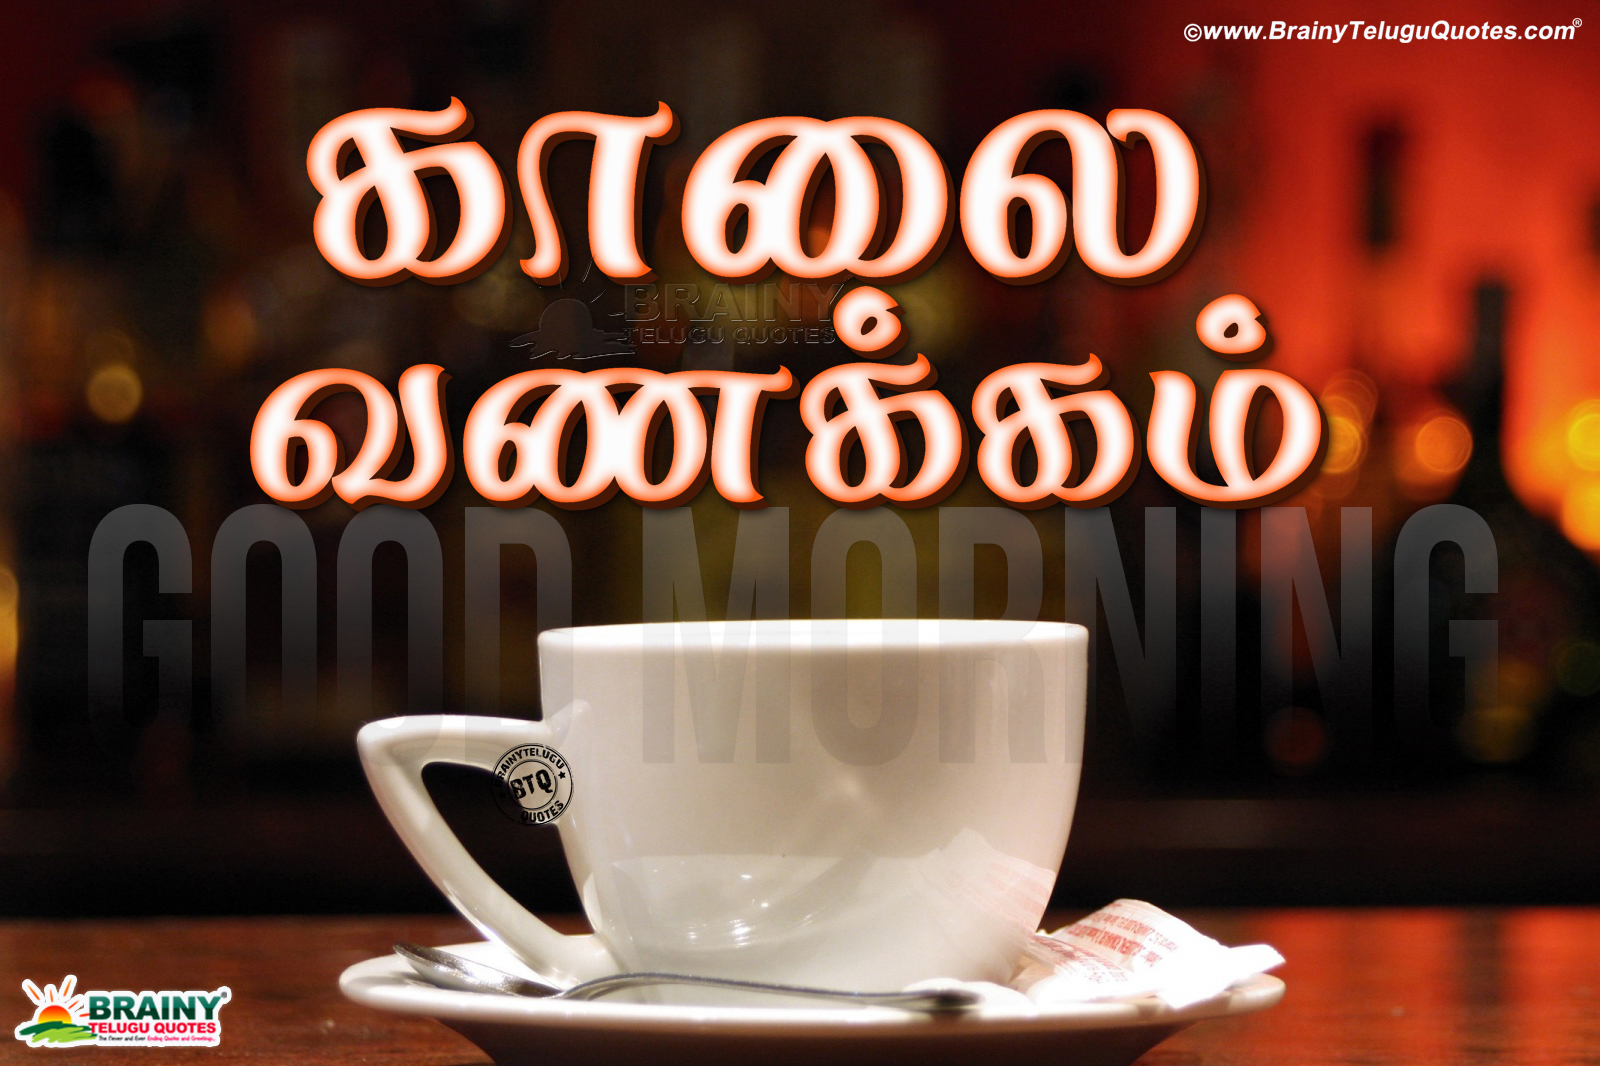 Tamil Good Morning Greetings With Hd Wallpapers Free Download